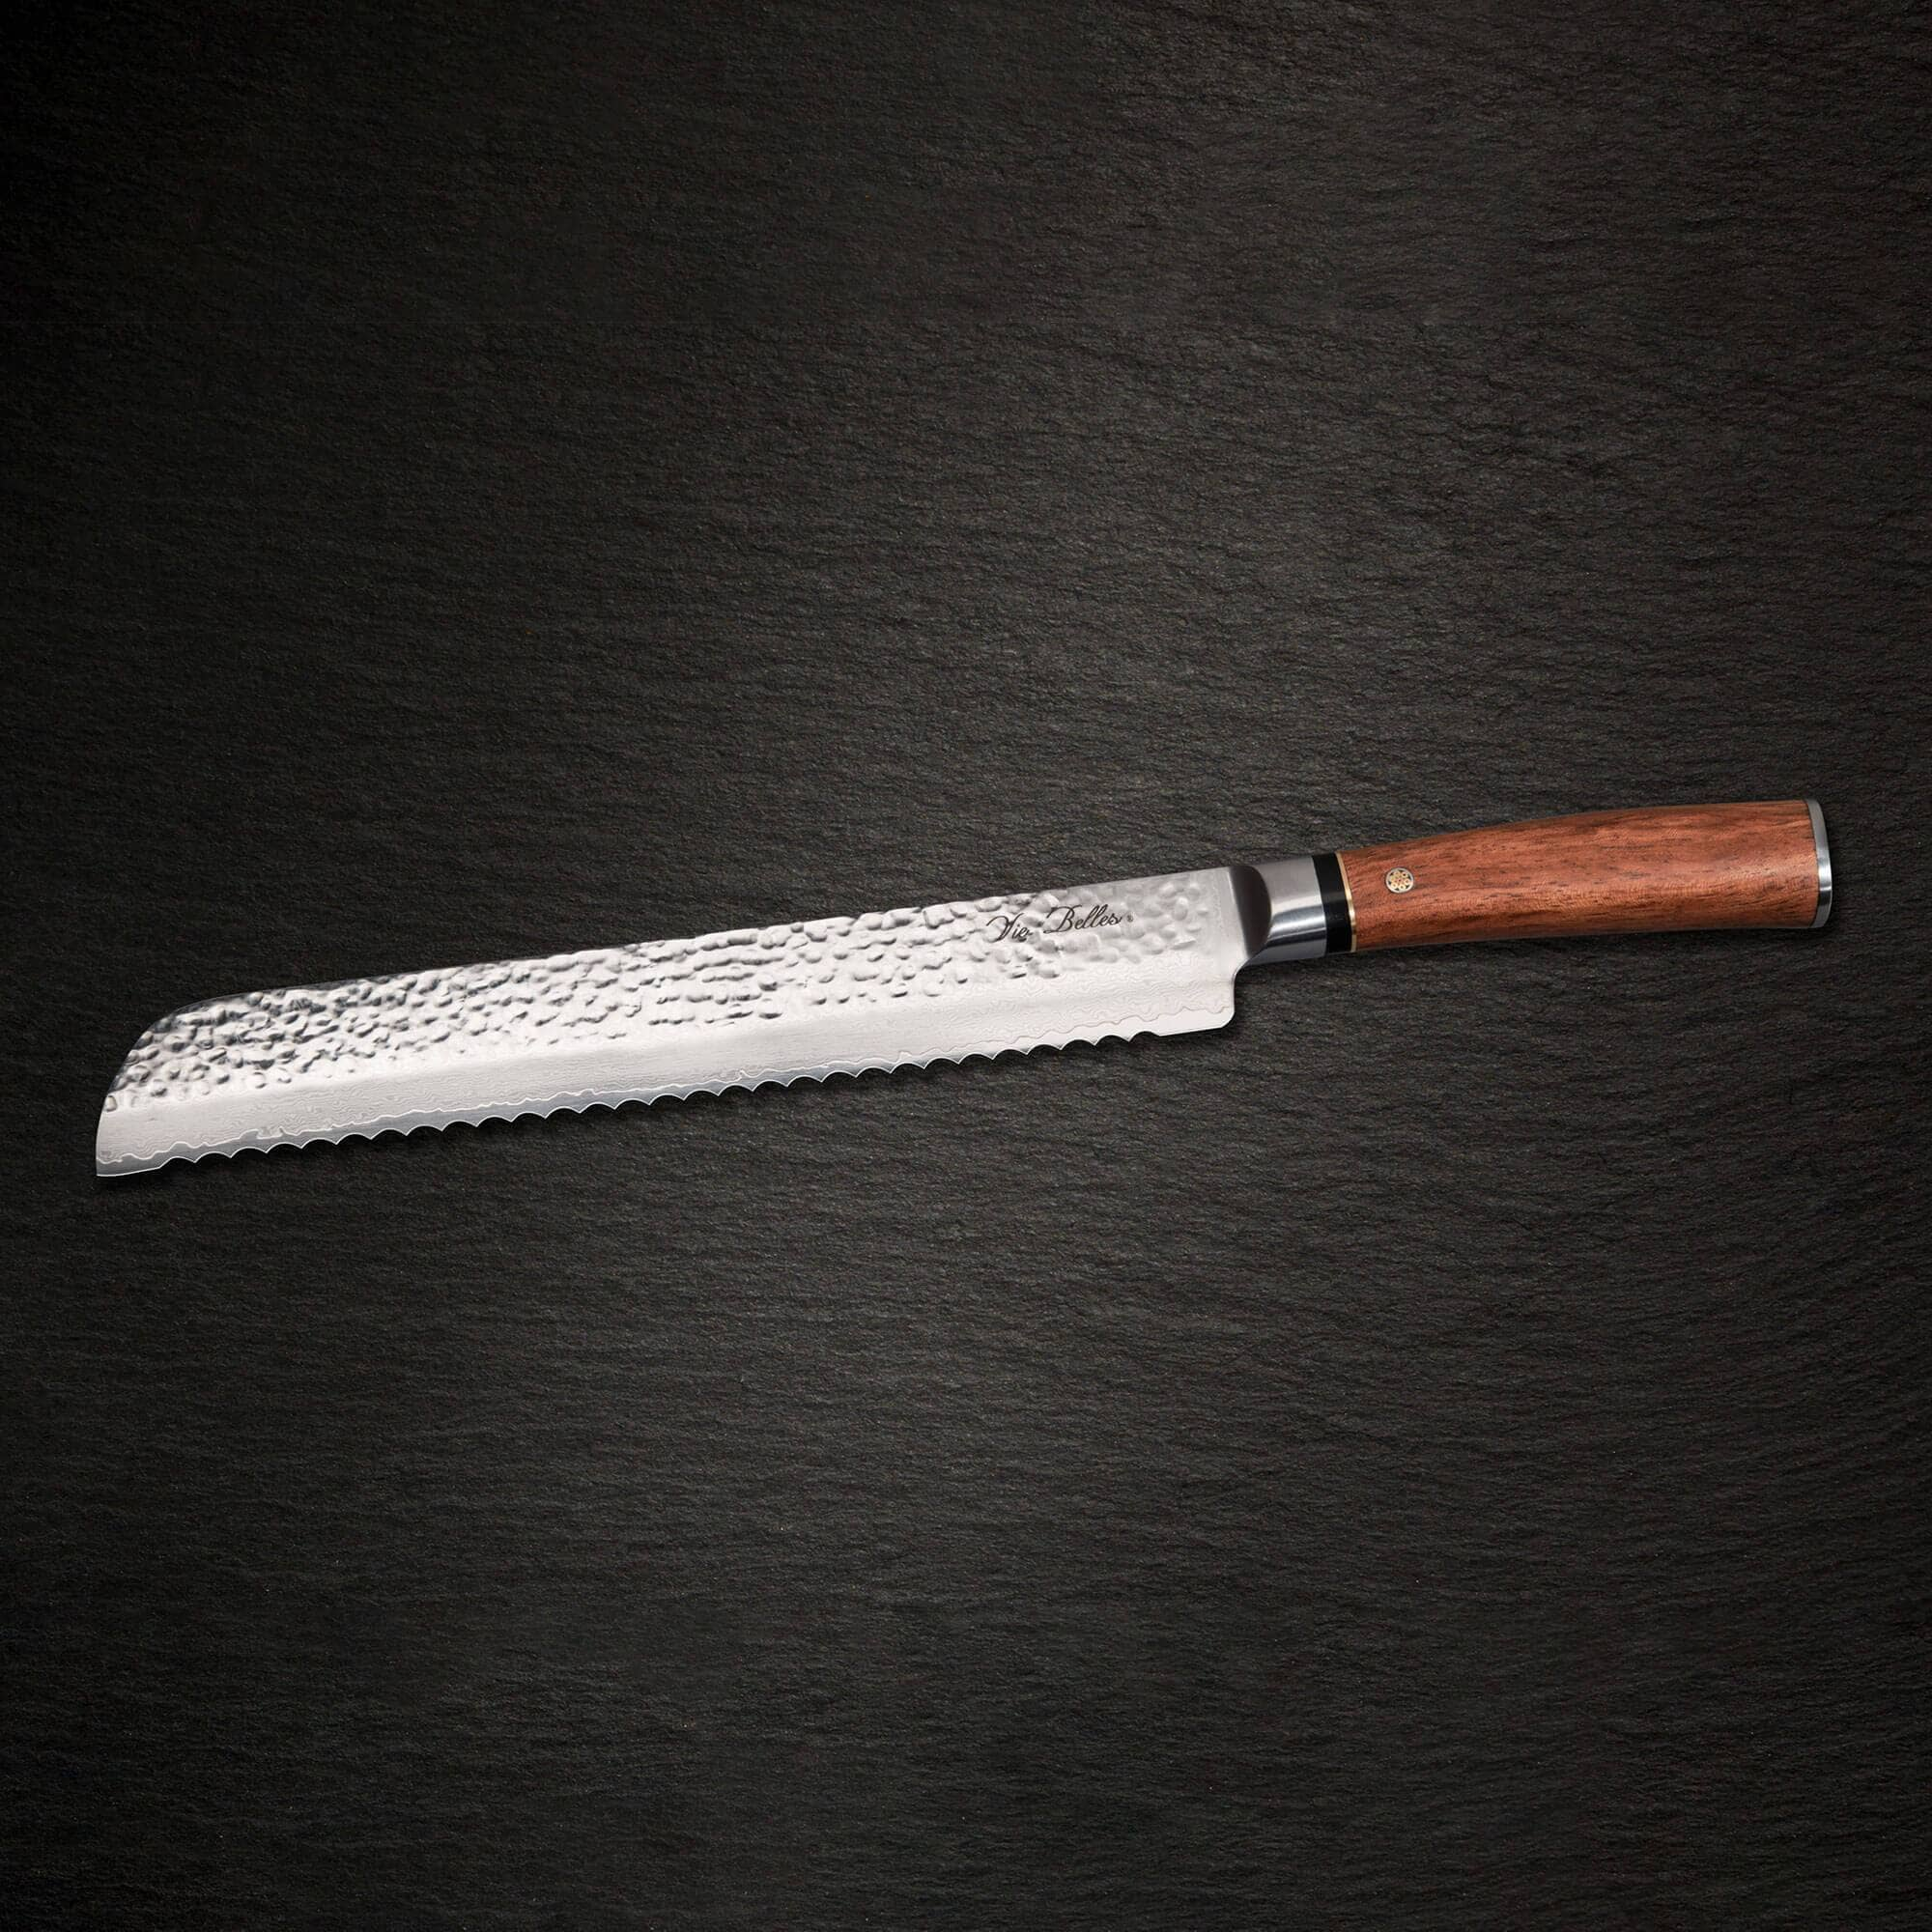 Cuchillo de pan dentado